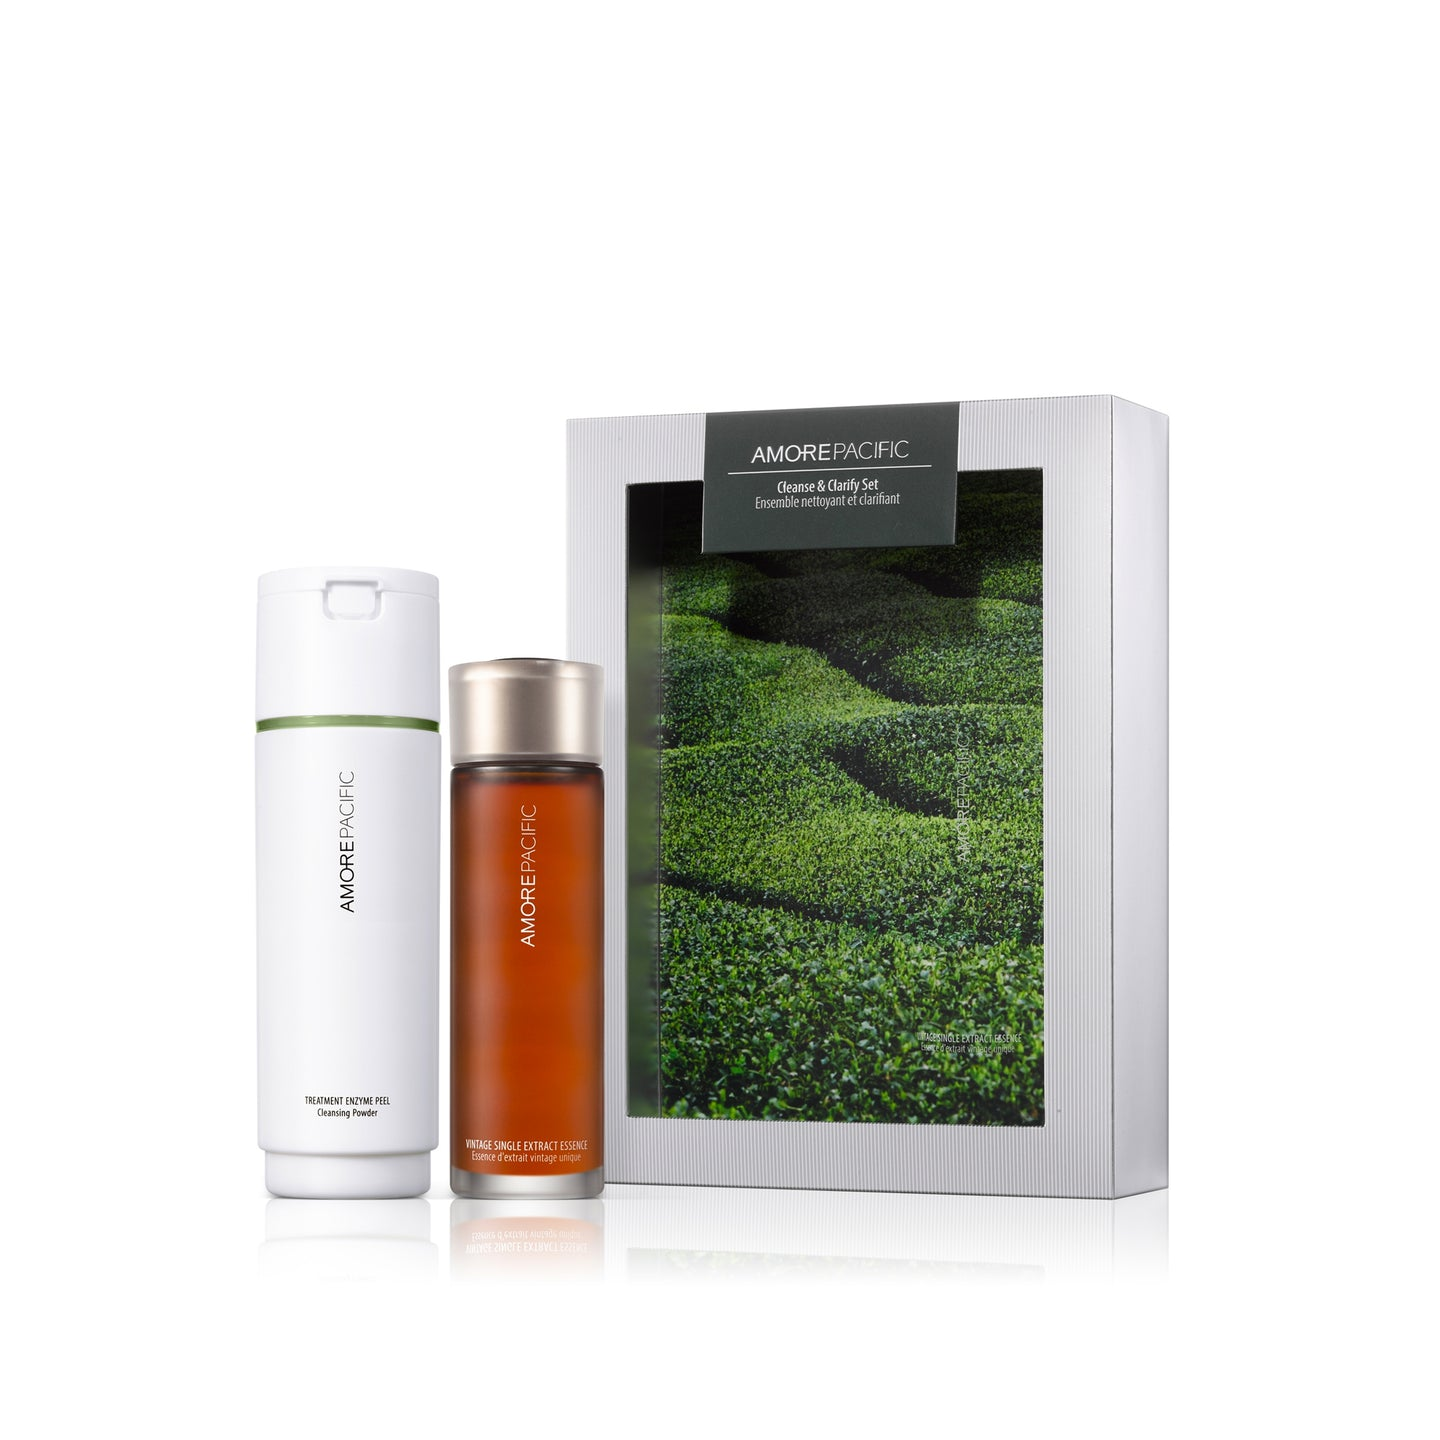 Cleanse & Clarify Set ($145 value)